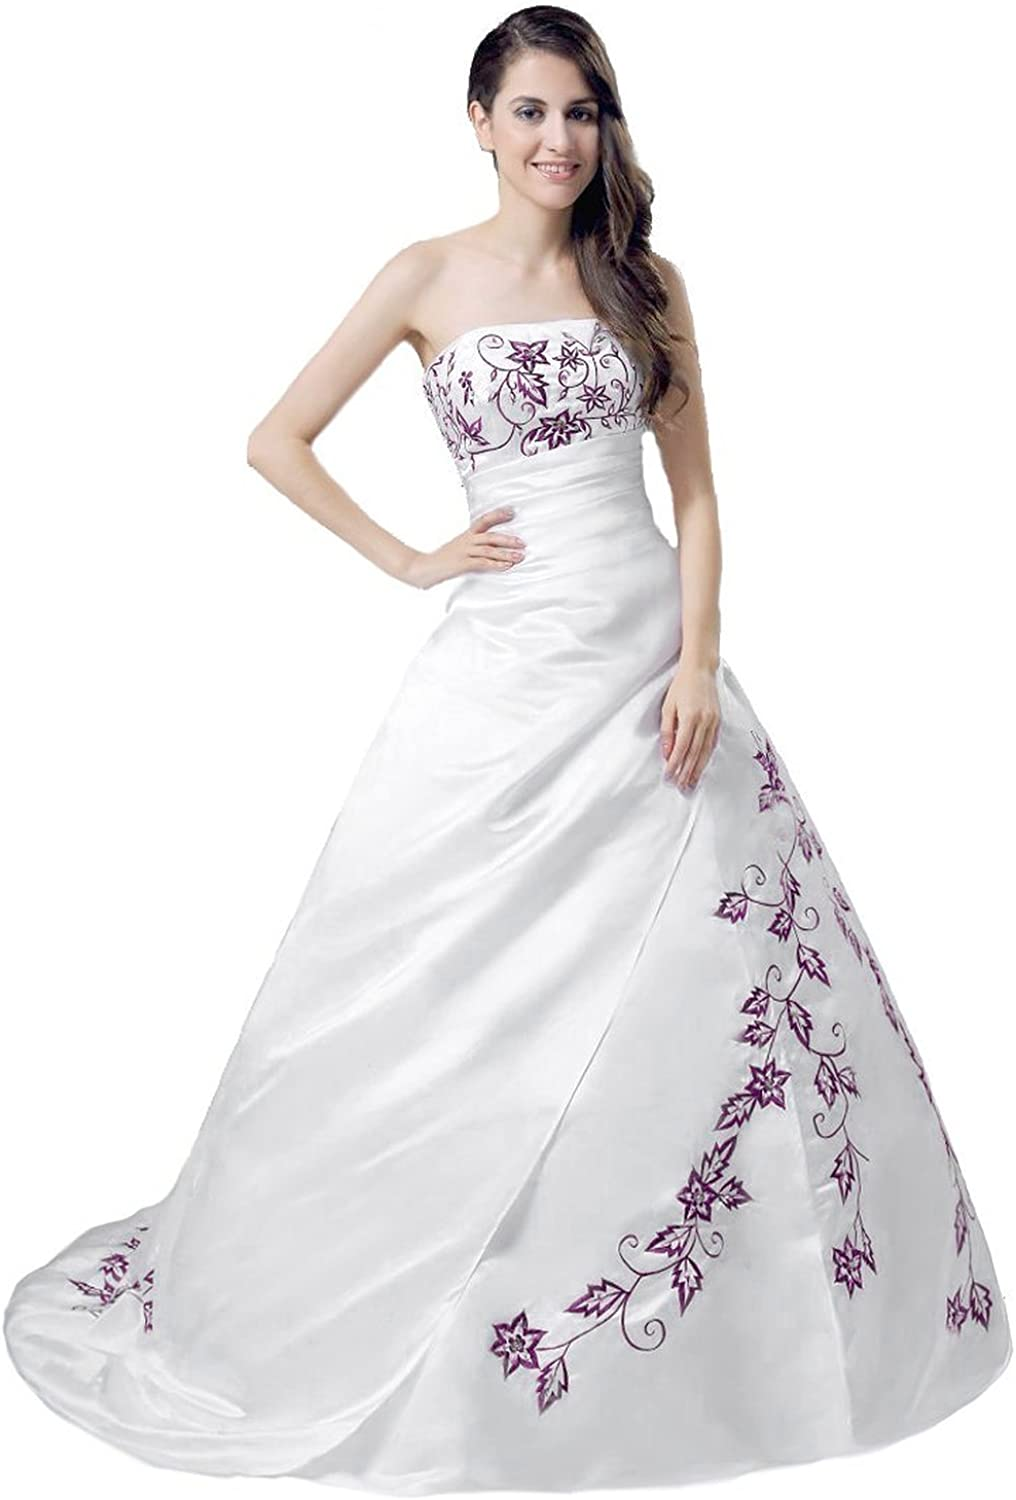 Kmformals Womens Embroidery Satin Wedding Dress